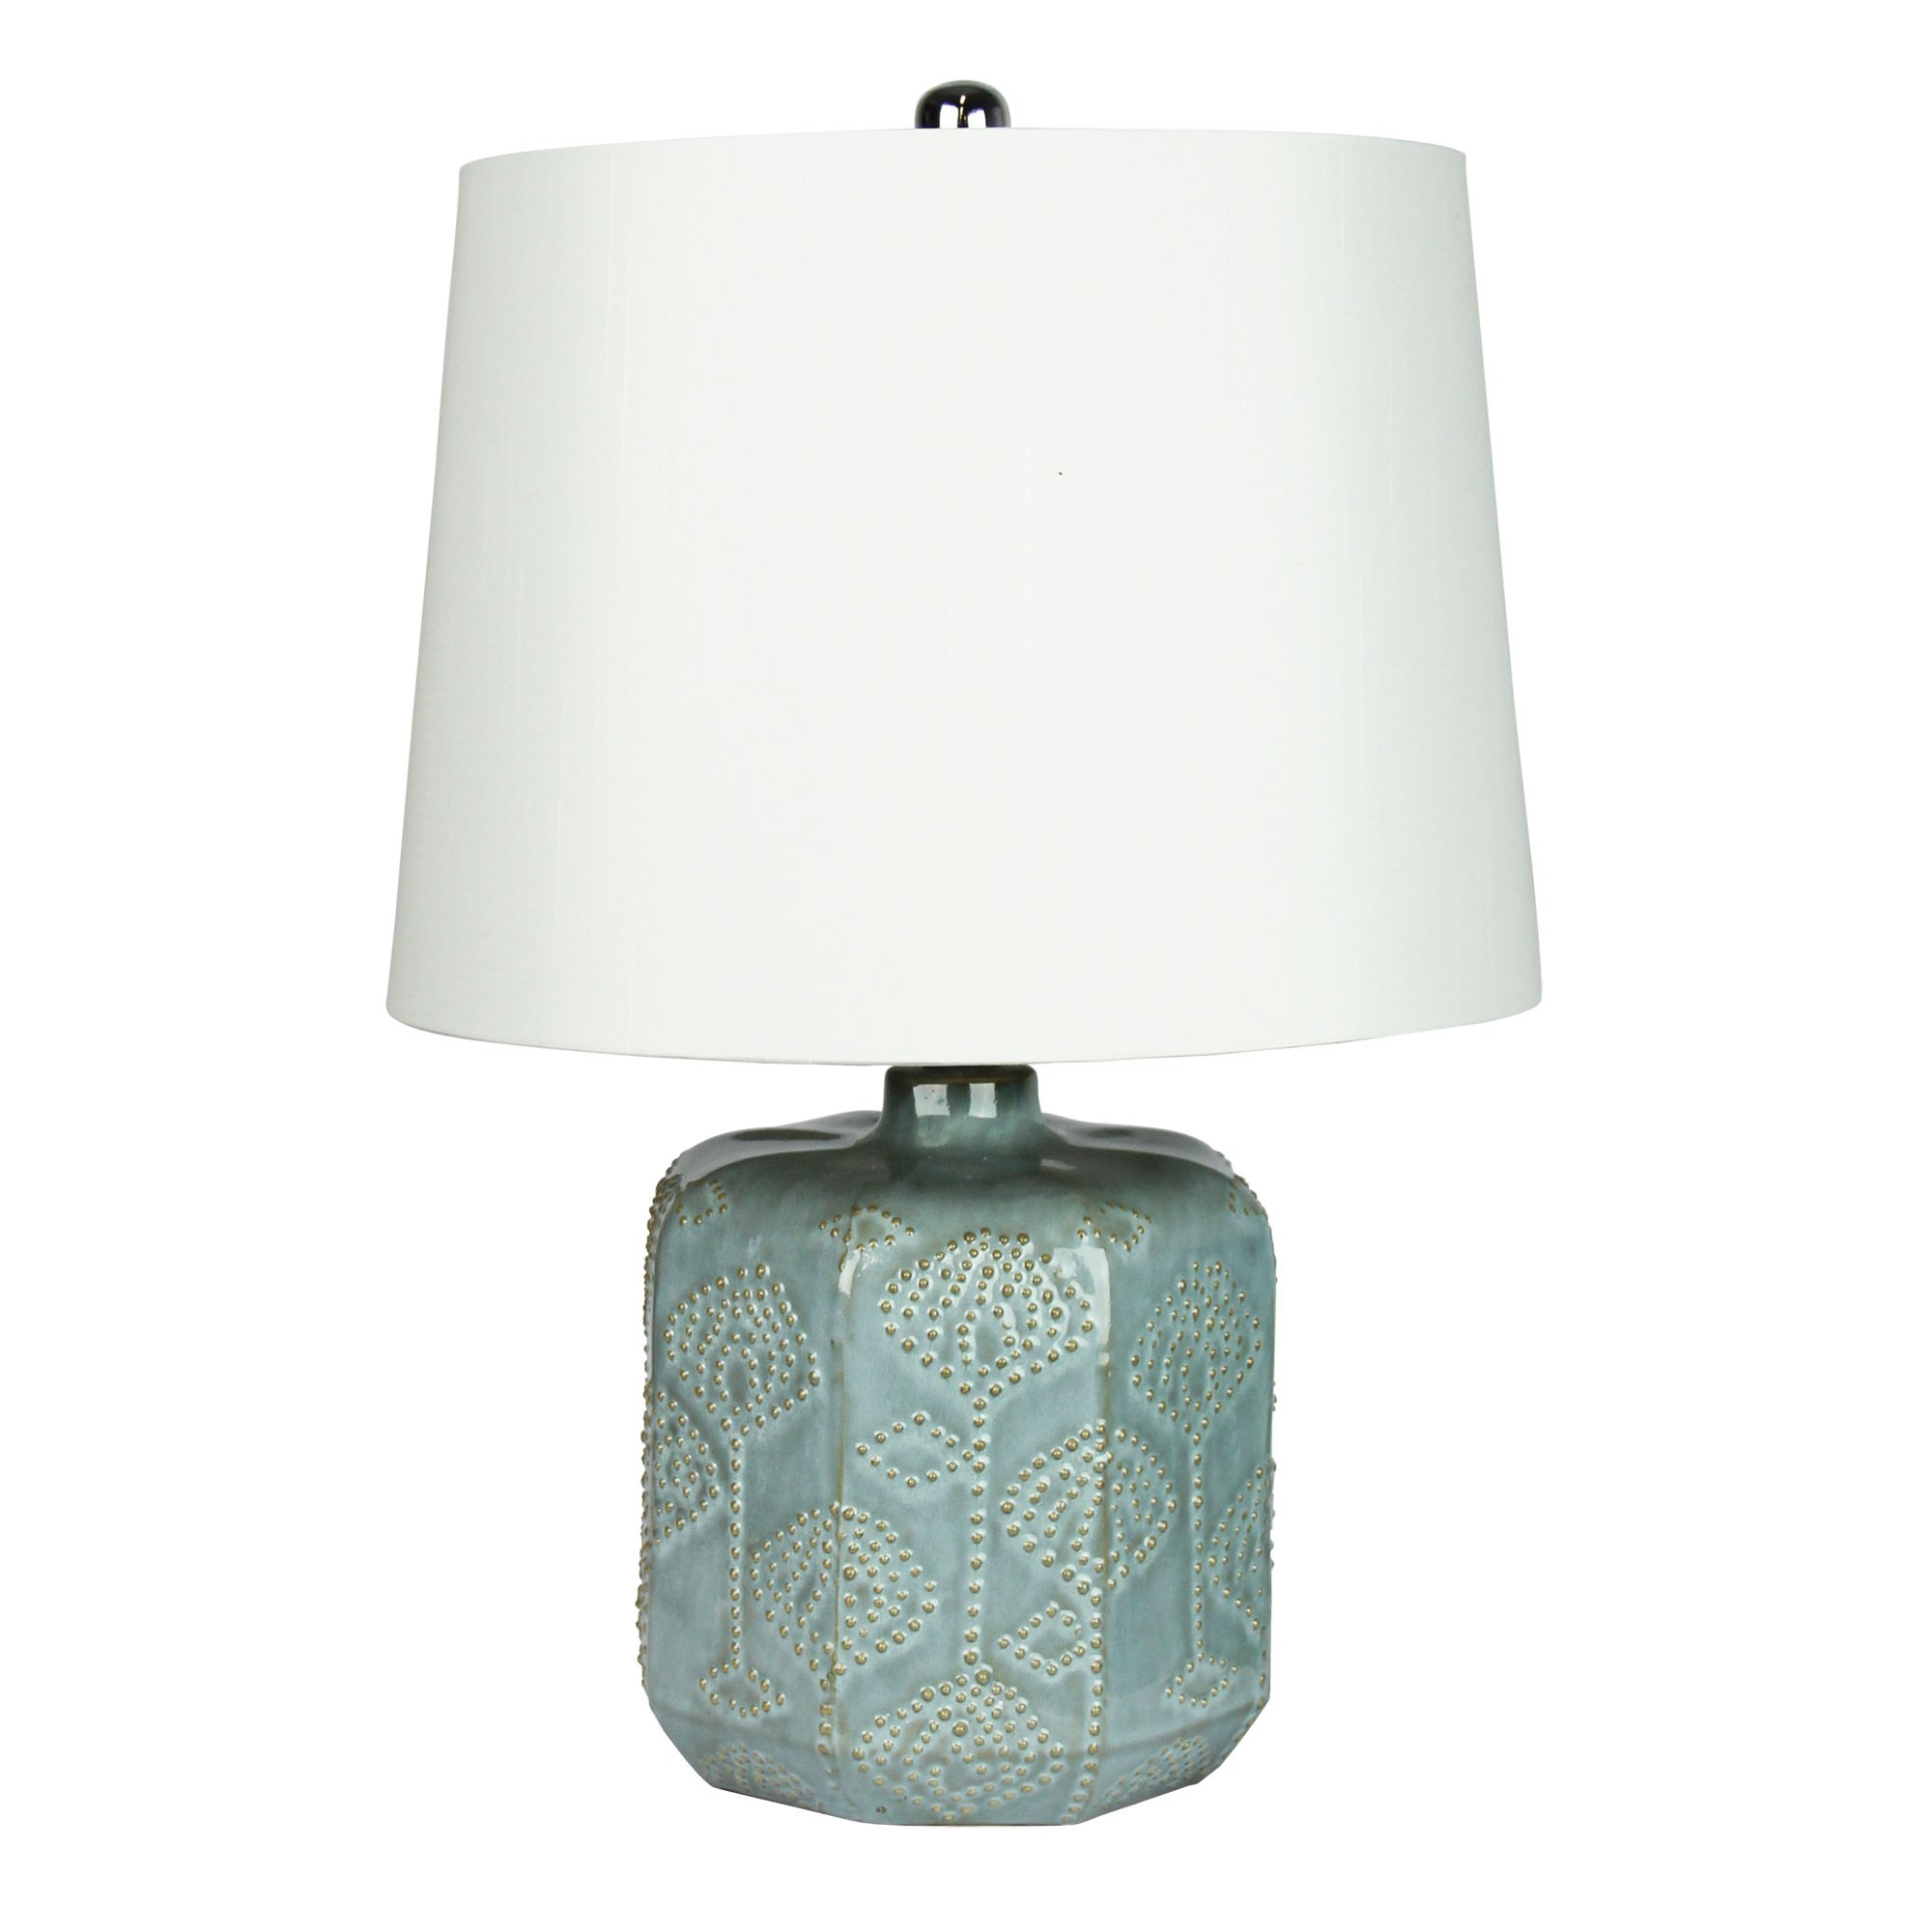 Bikki Embossed Ceramic Base Table Lamp, Duck Egg Blue